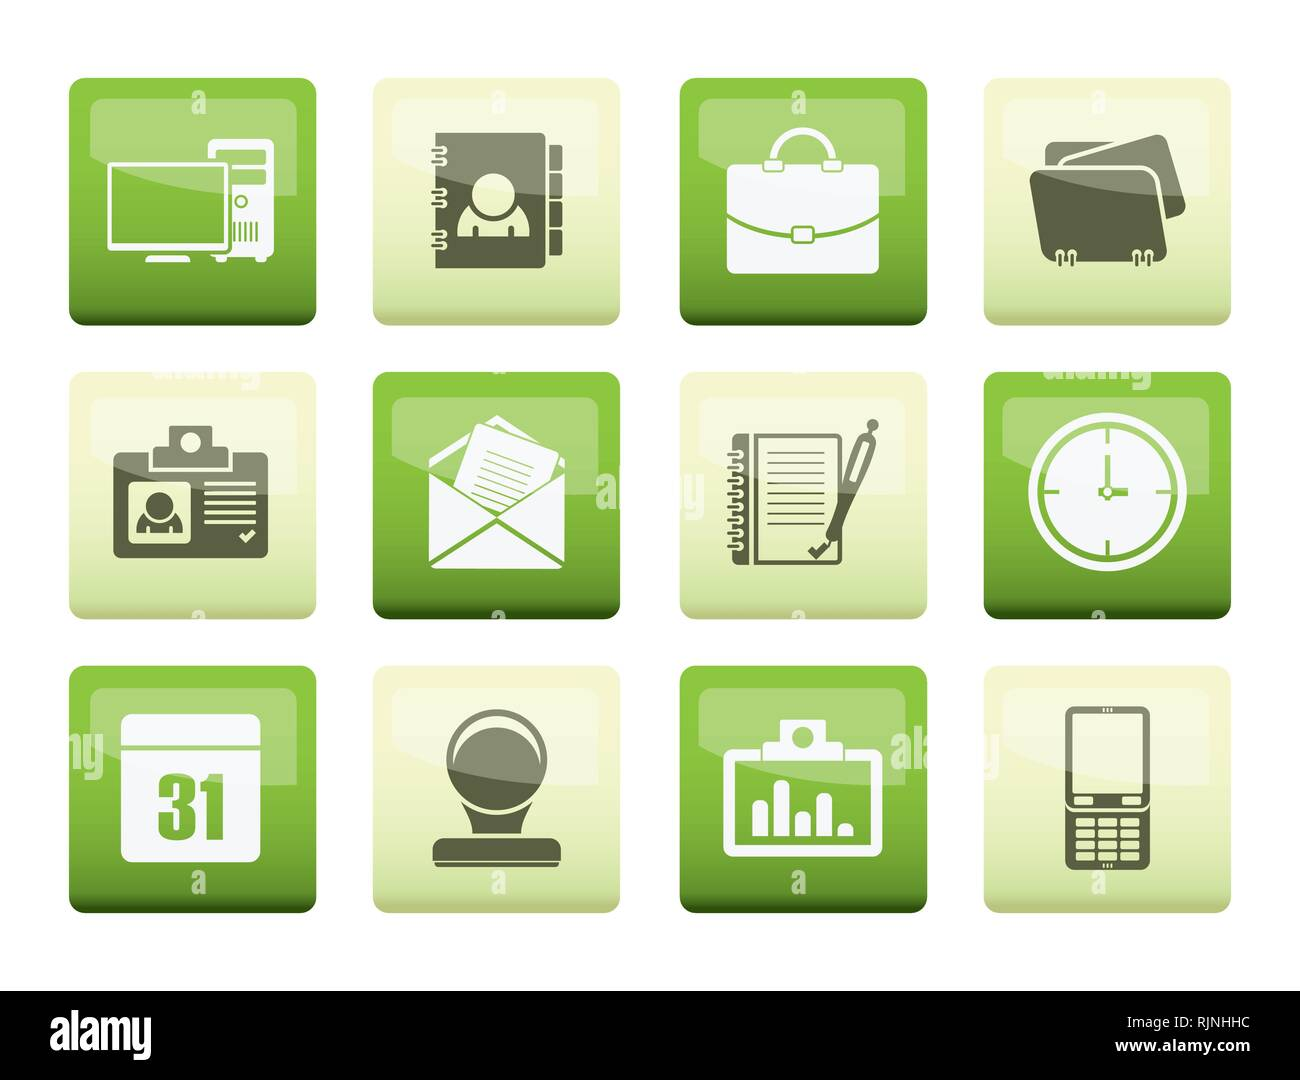 Les applications Web d'entreprise et de bureau, icônes, icônes universelles sur fond couleur - vector icon set Photo Stock